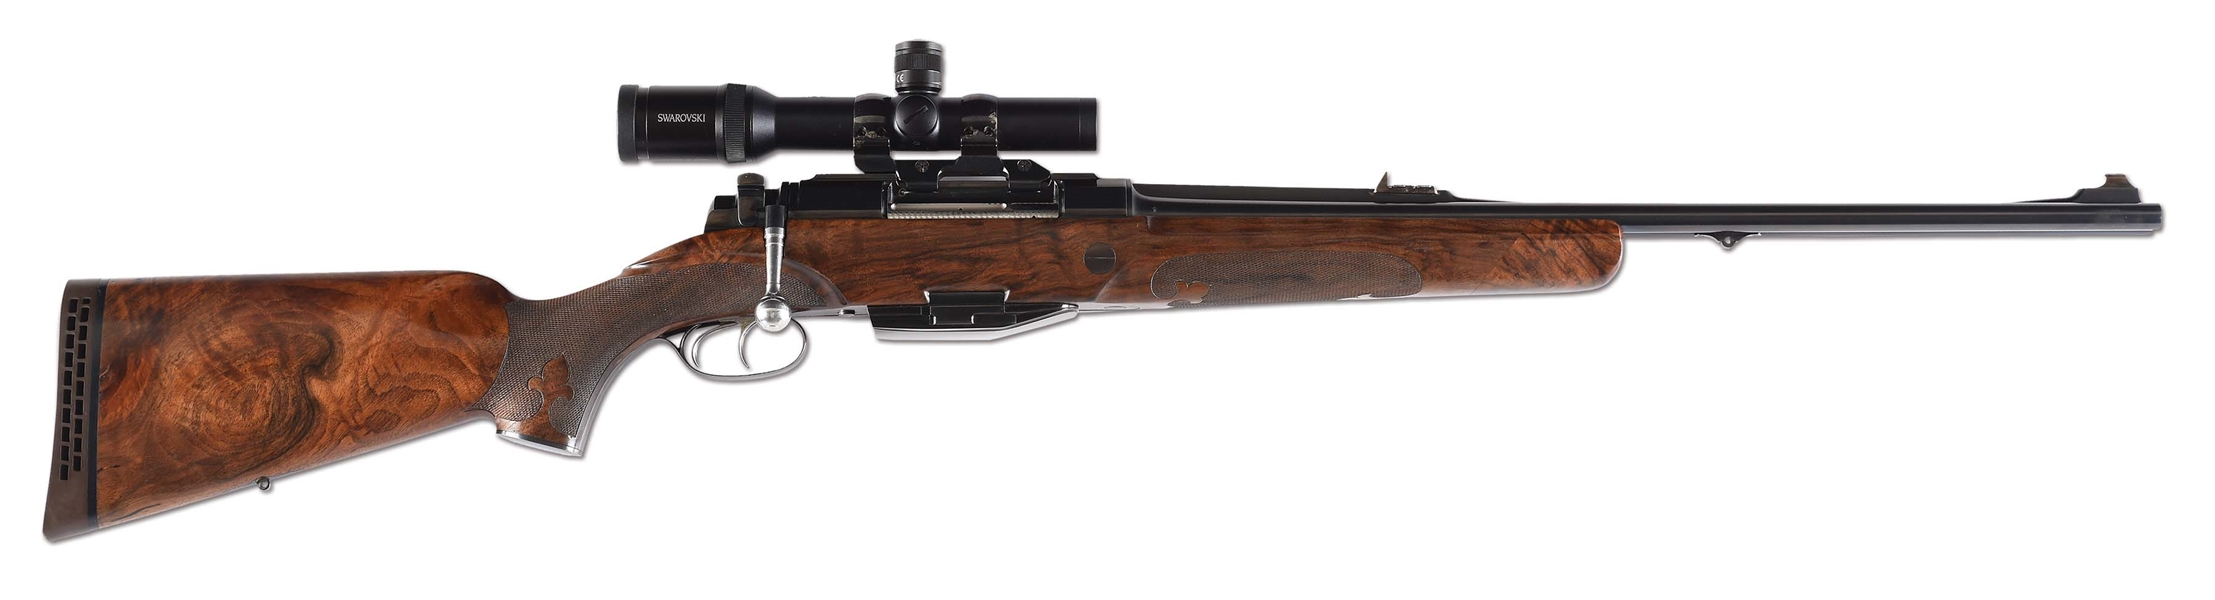 (M) INNOVATIVE SZECSEI & FUCHS BOLT ACTION DANGEROUS GAME DOUBLE RIFLE WITH SPARE MAGAZINE AND SCOPE- SERIAL NUMBER 004!.